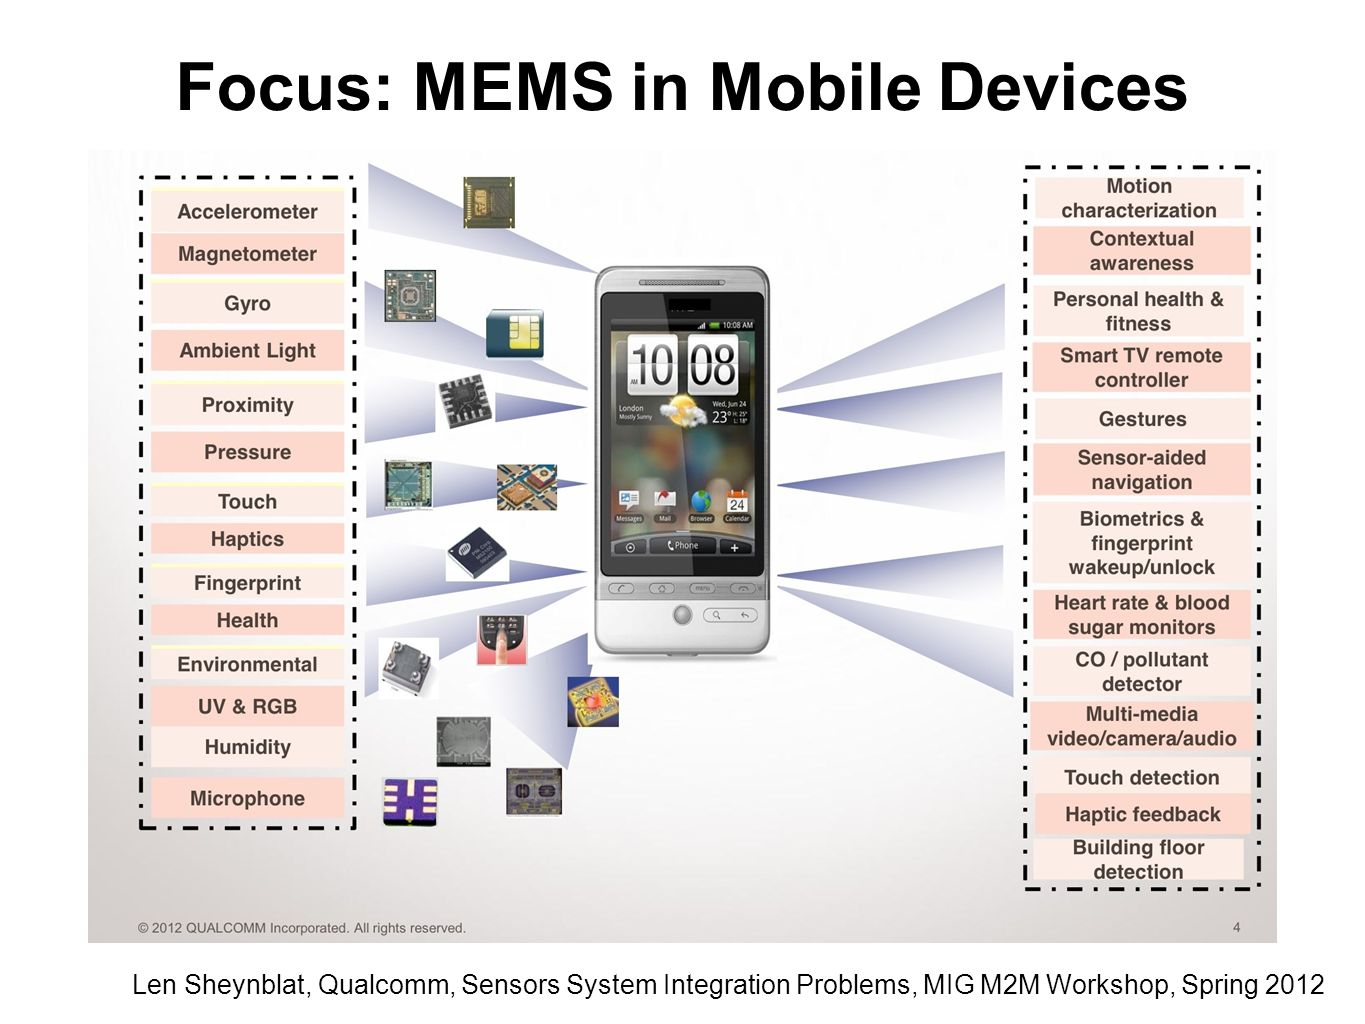 Focus: MEMS in Mobile Devices